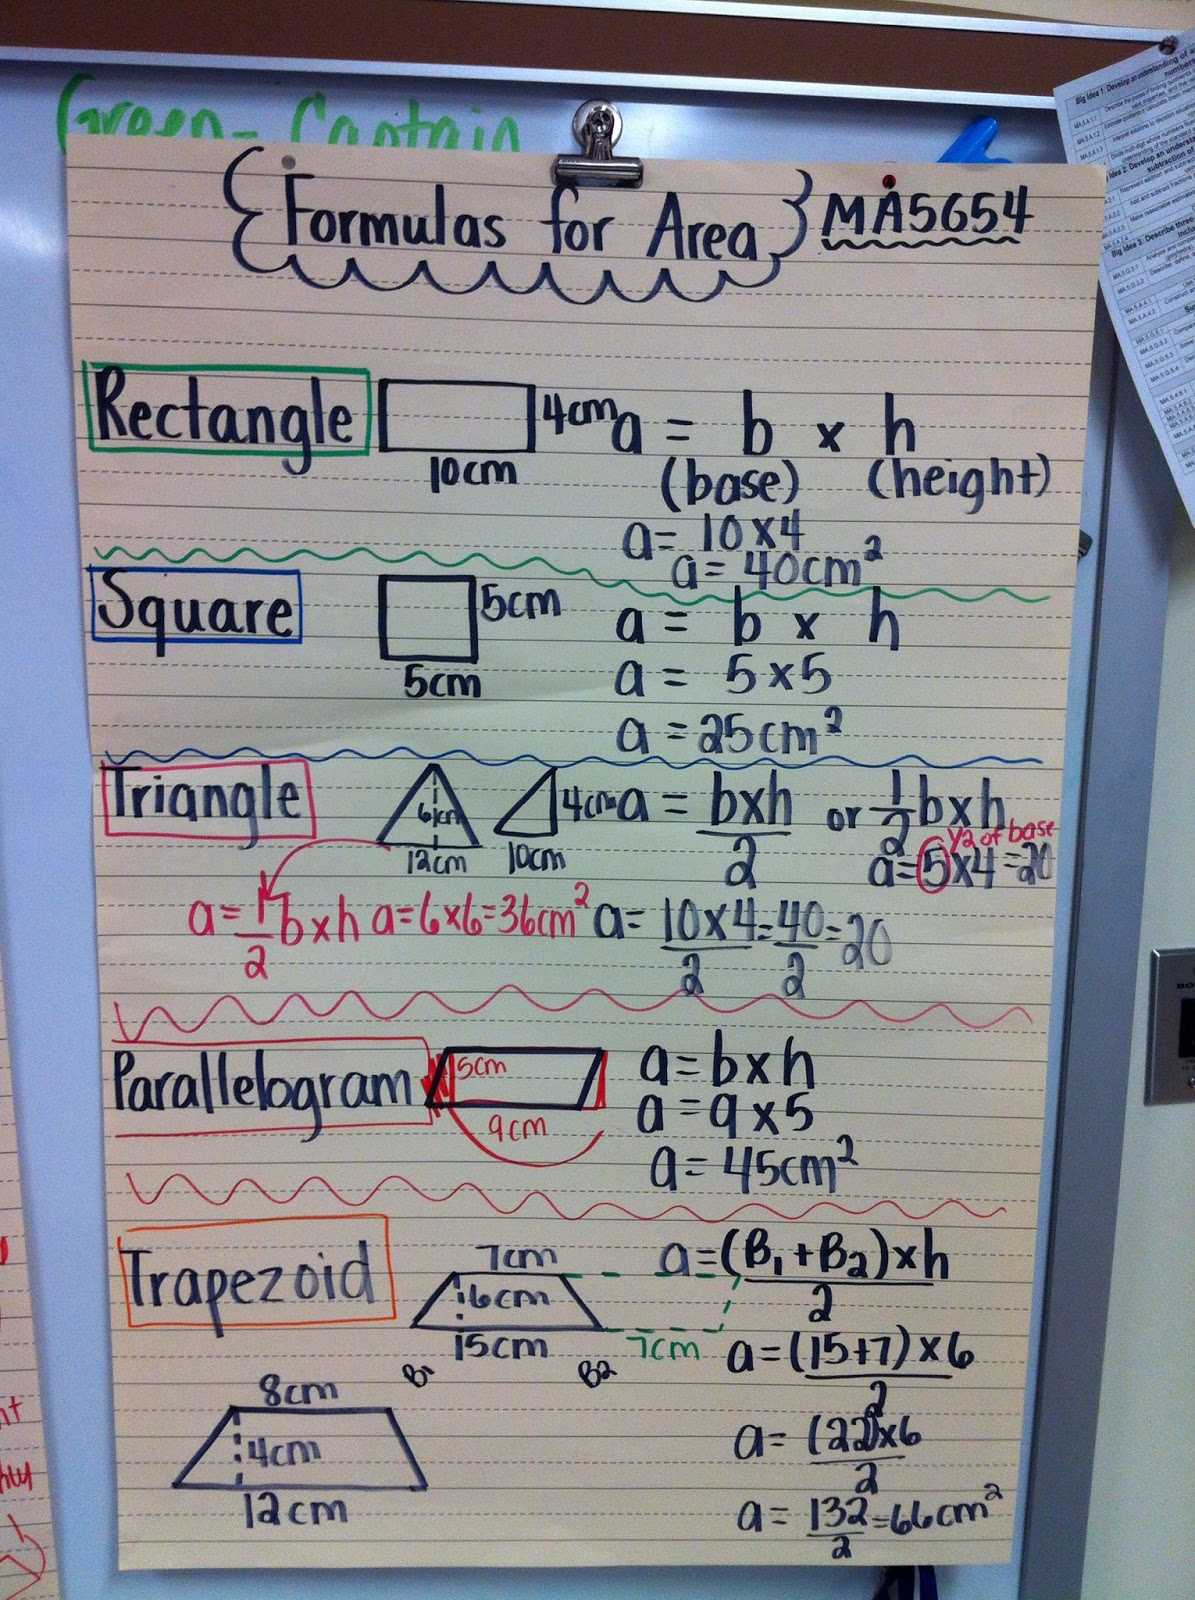 Mrs Thomas 5th Grade Class How Can We Determine The Area Of A T Zoid